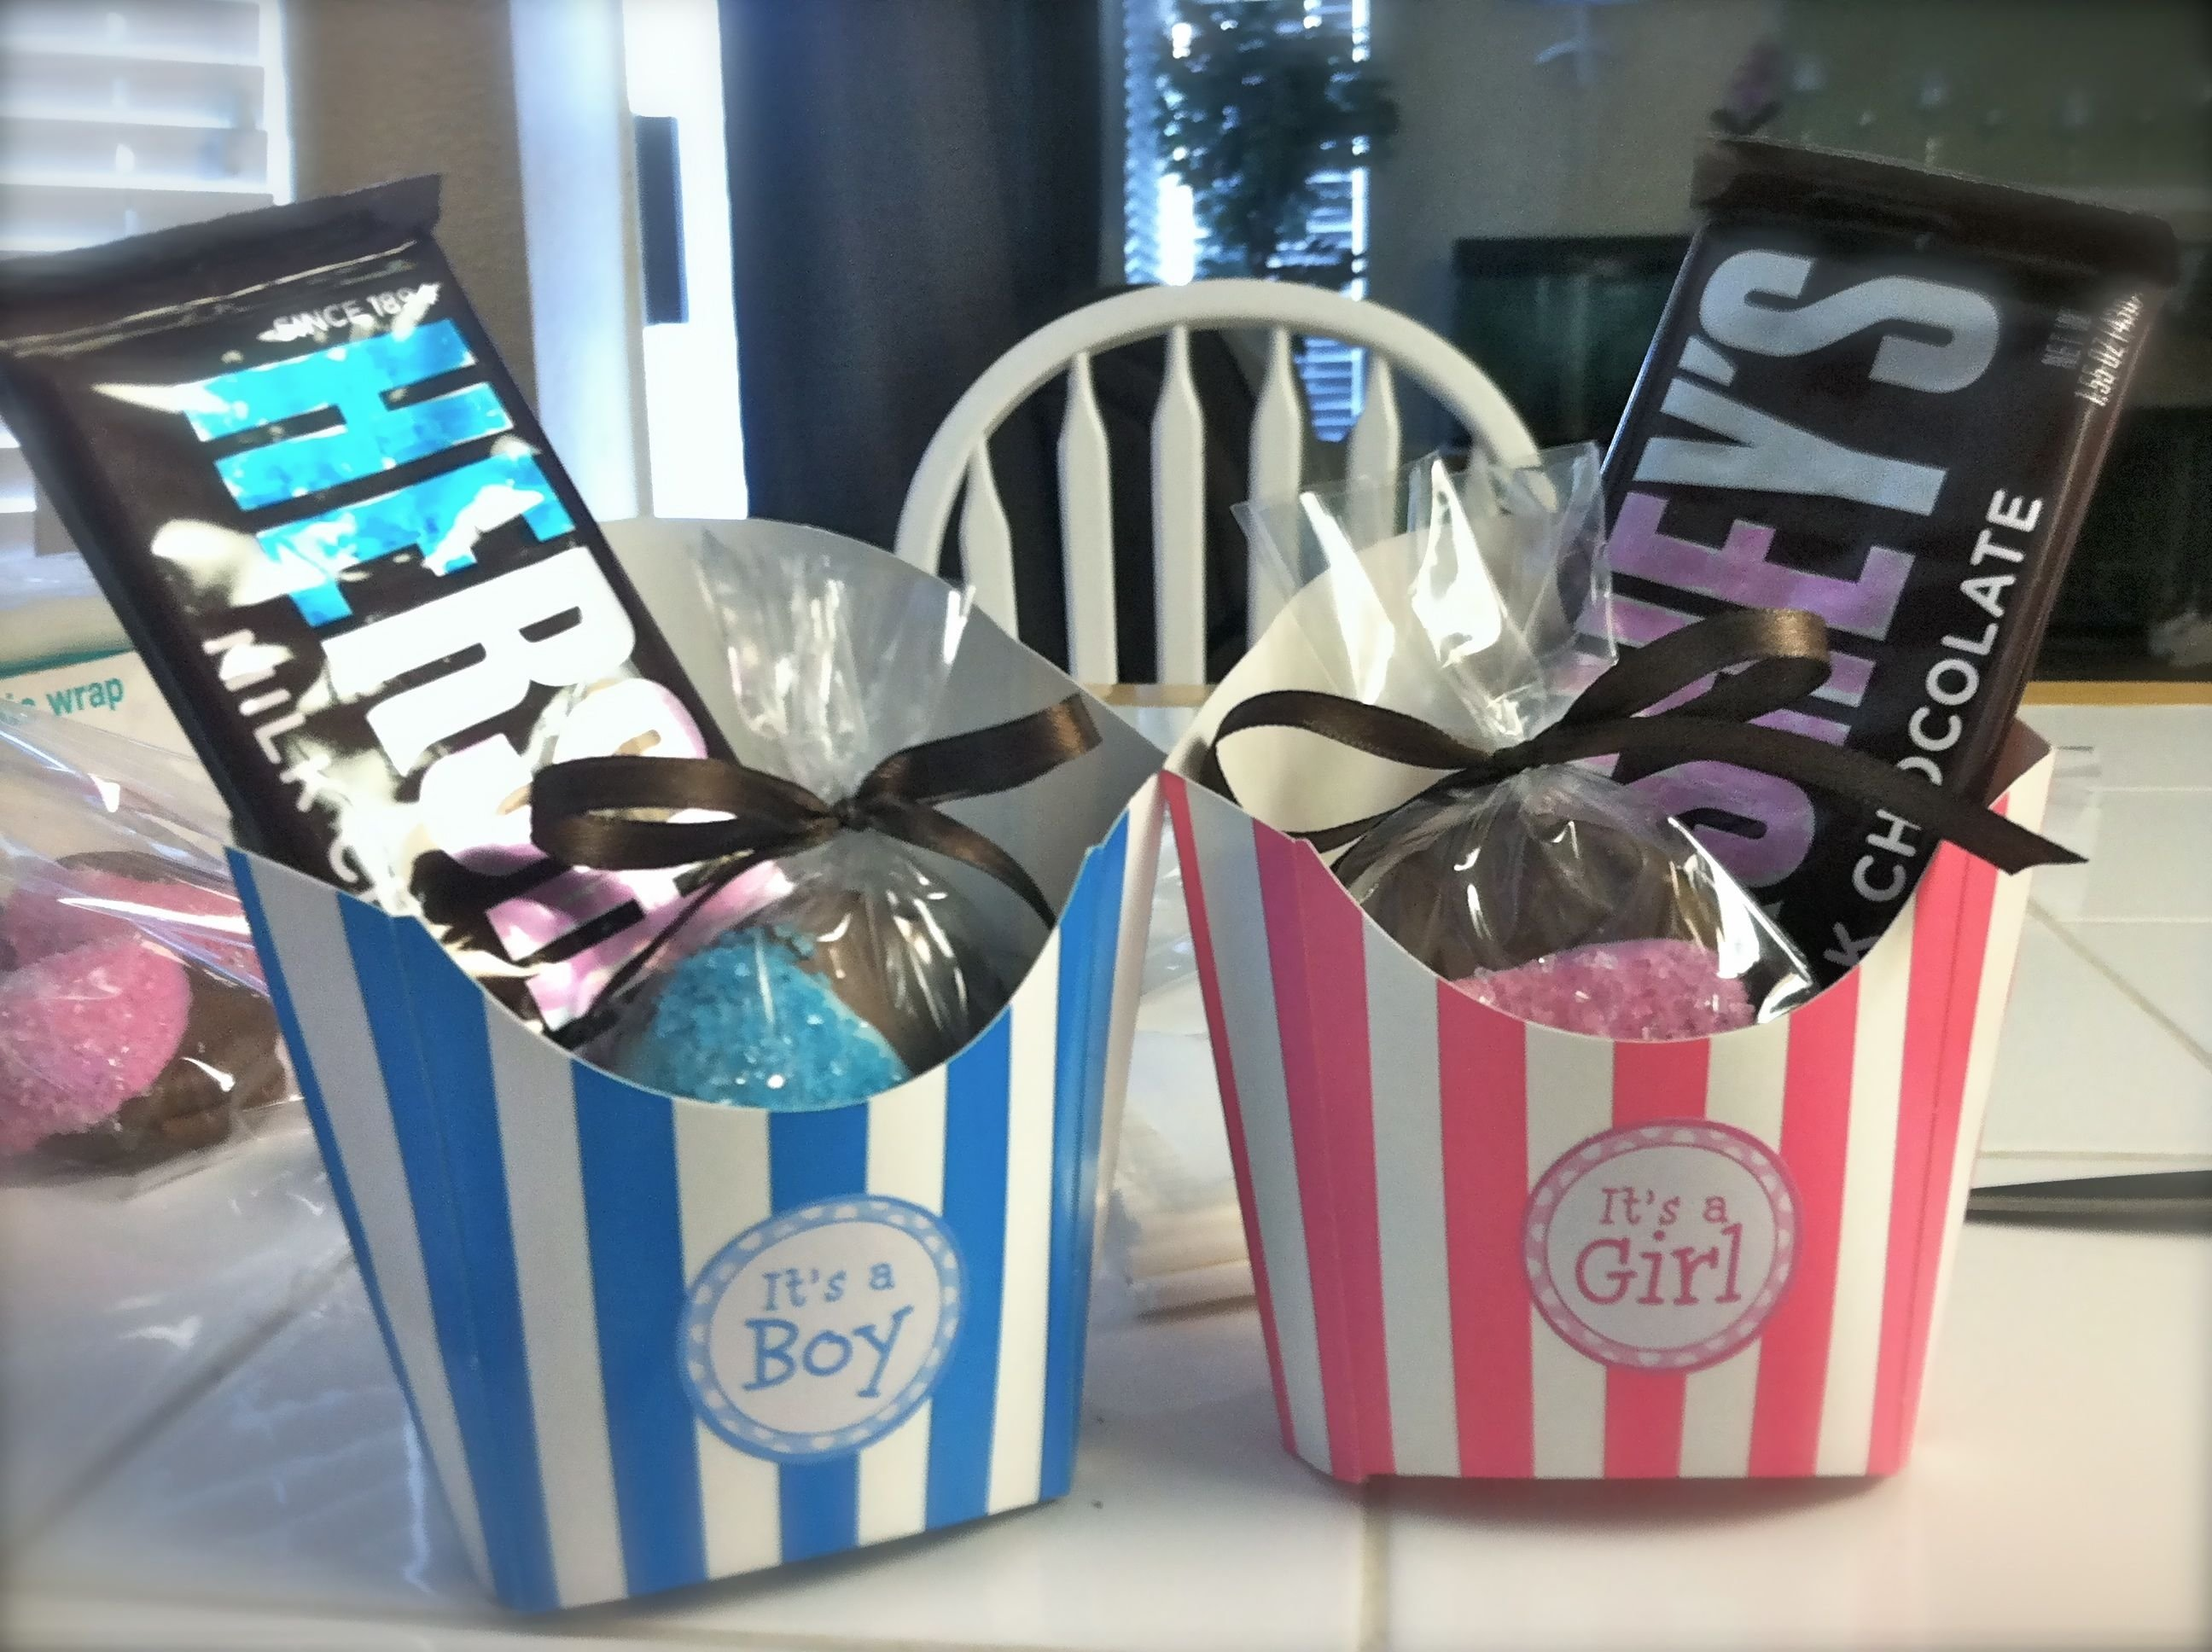 10 Unique Gender Reveal Party Gift Ideas gender reveal party decorations ideas google search jones baby 2021